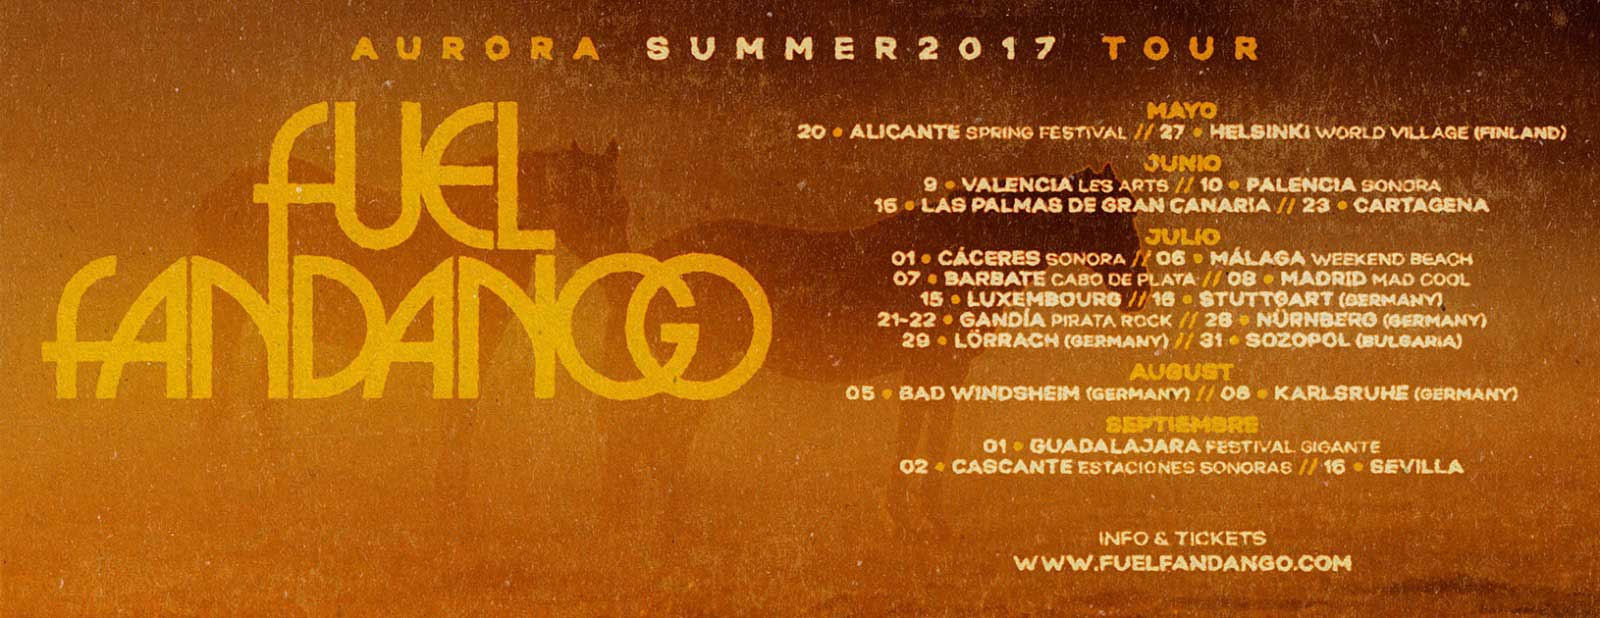 Fuel Fandango Aurora Summer 2017 tour